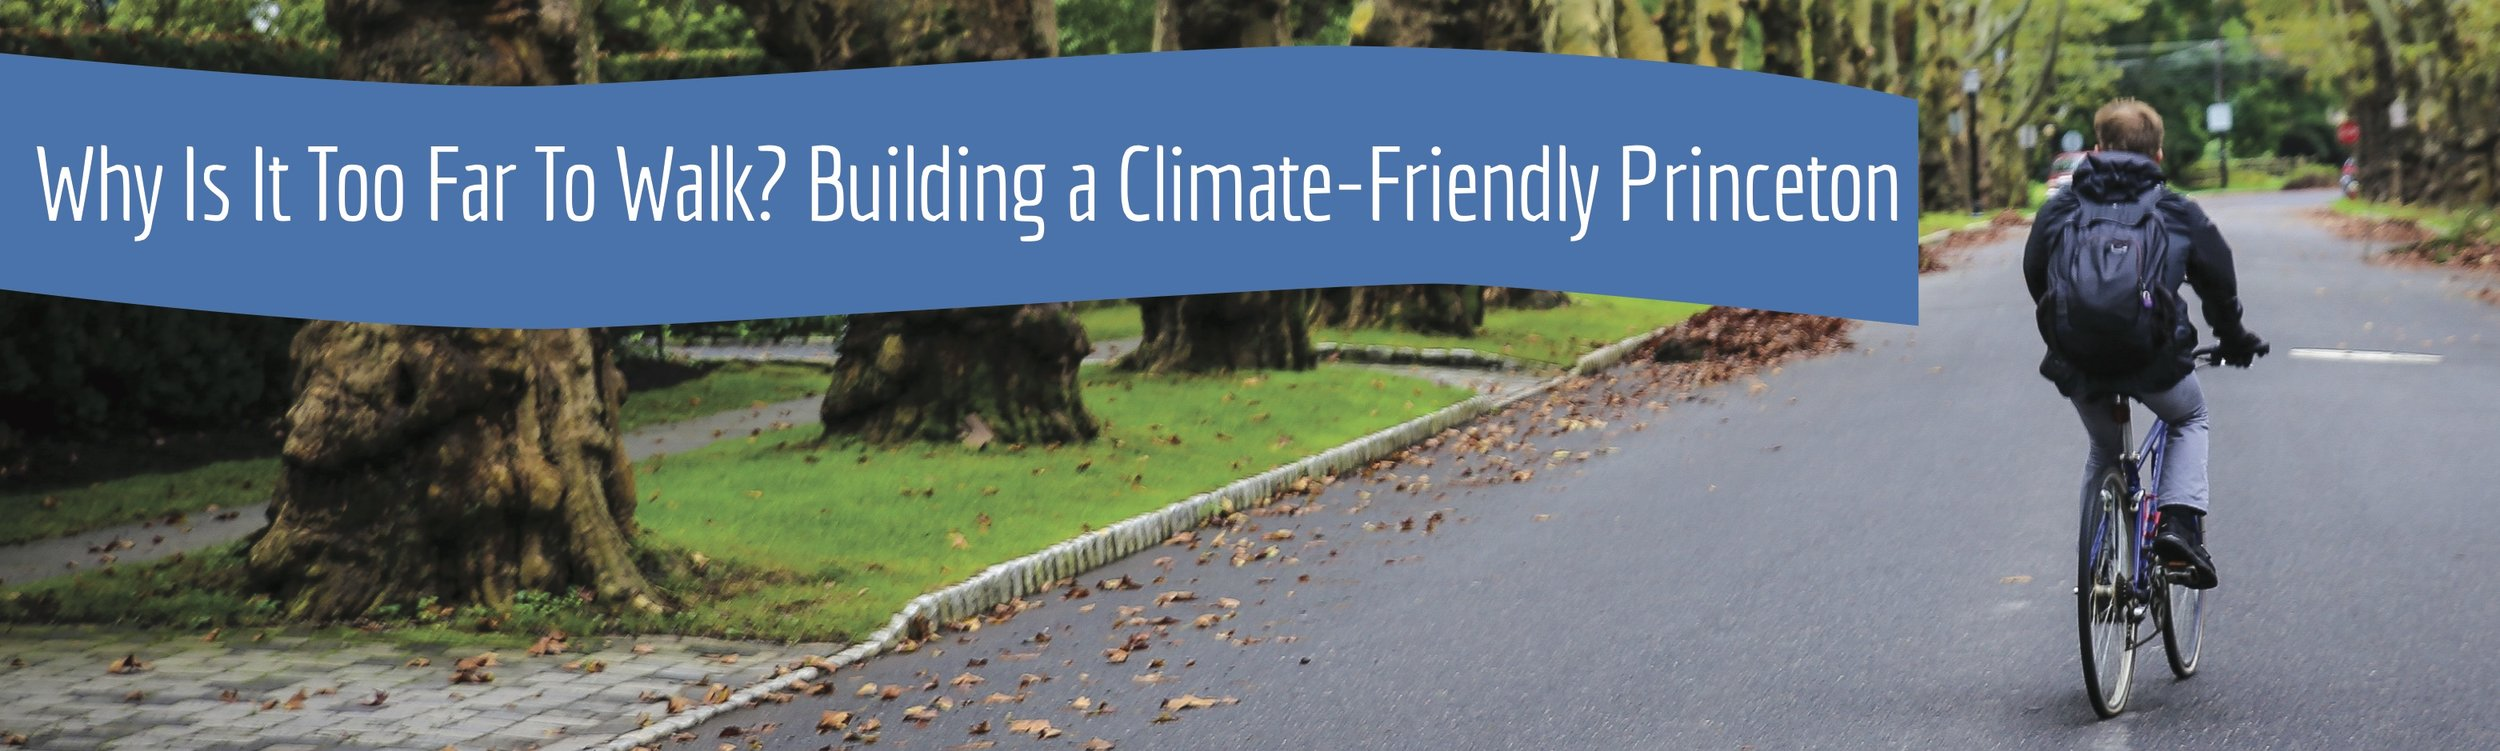 Building a climate-friendly Princeton